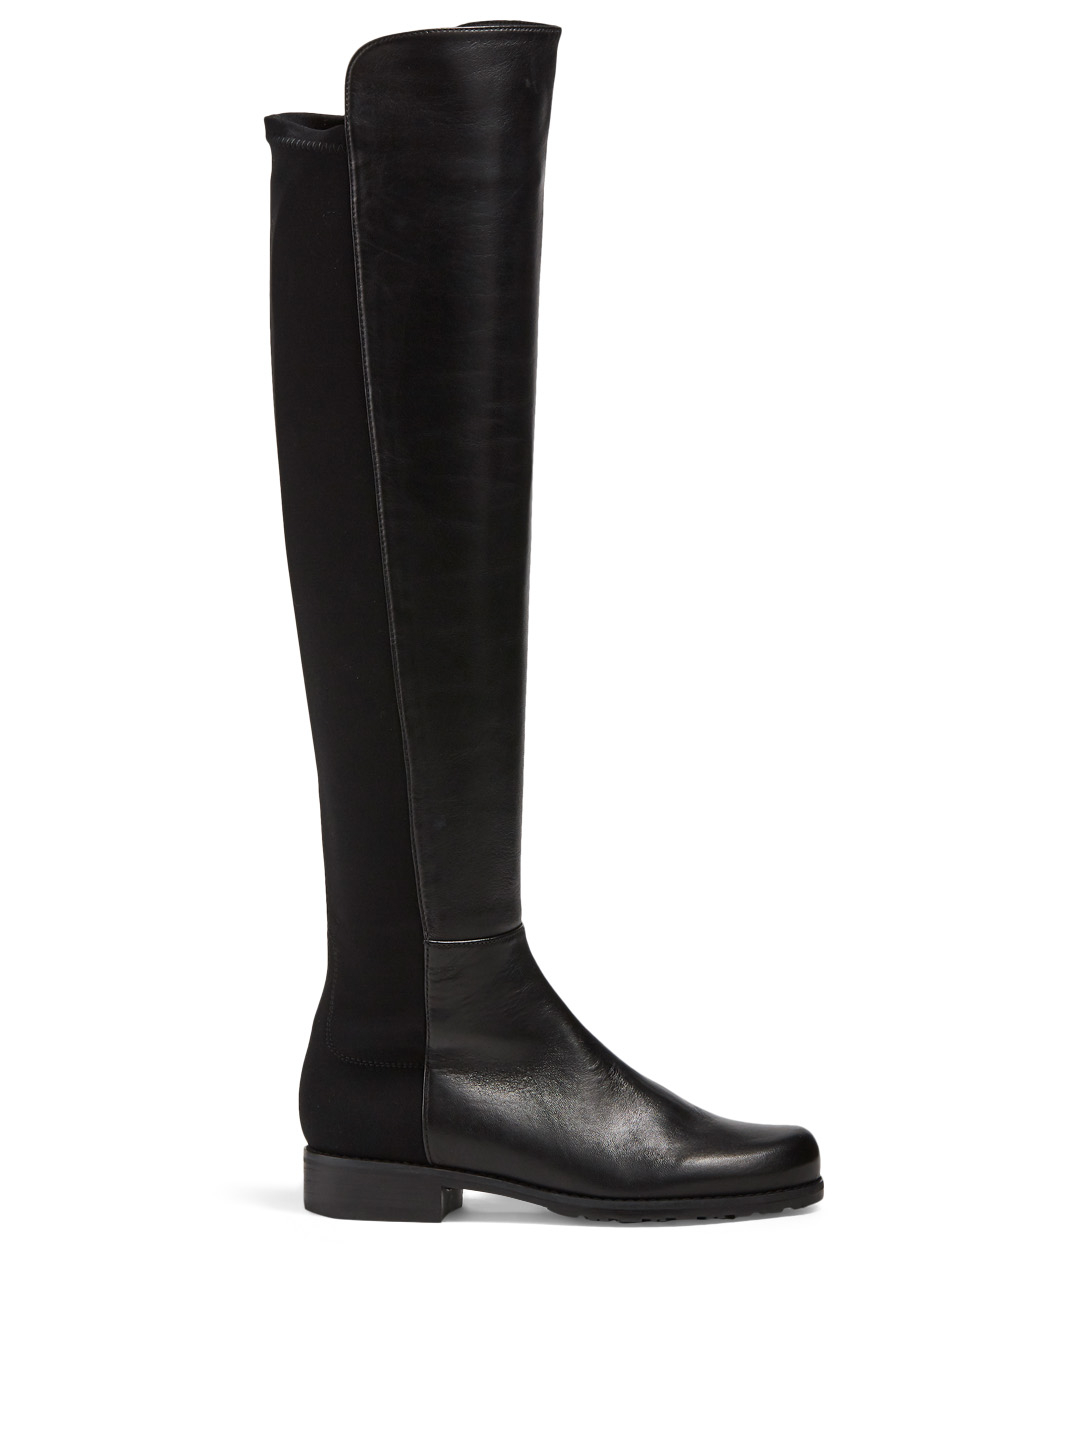 STUART WEITZMAN 5050 Leather Knee-High Boots Women's Black